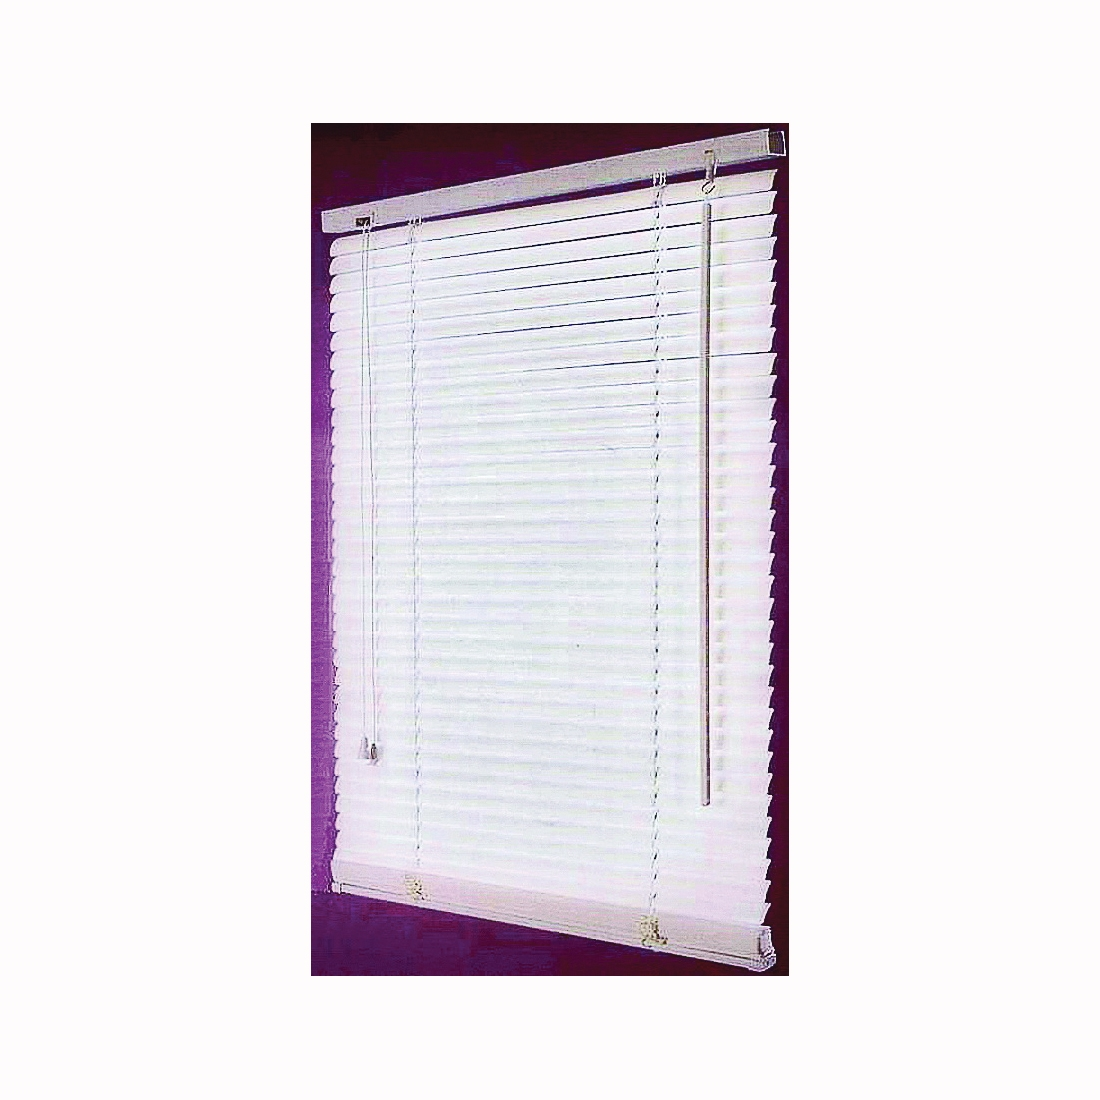 Picture of Simple Spaces FWB-27X64 Window Blinds, 64 in L, 27 in W, Faux Wood, White